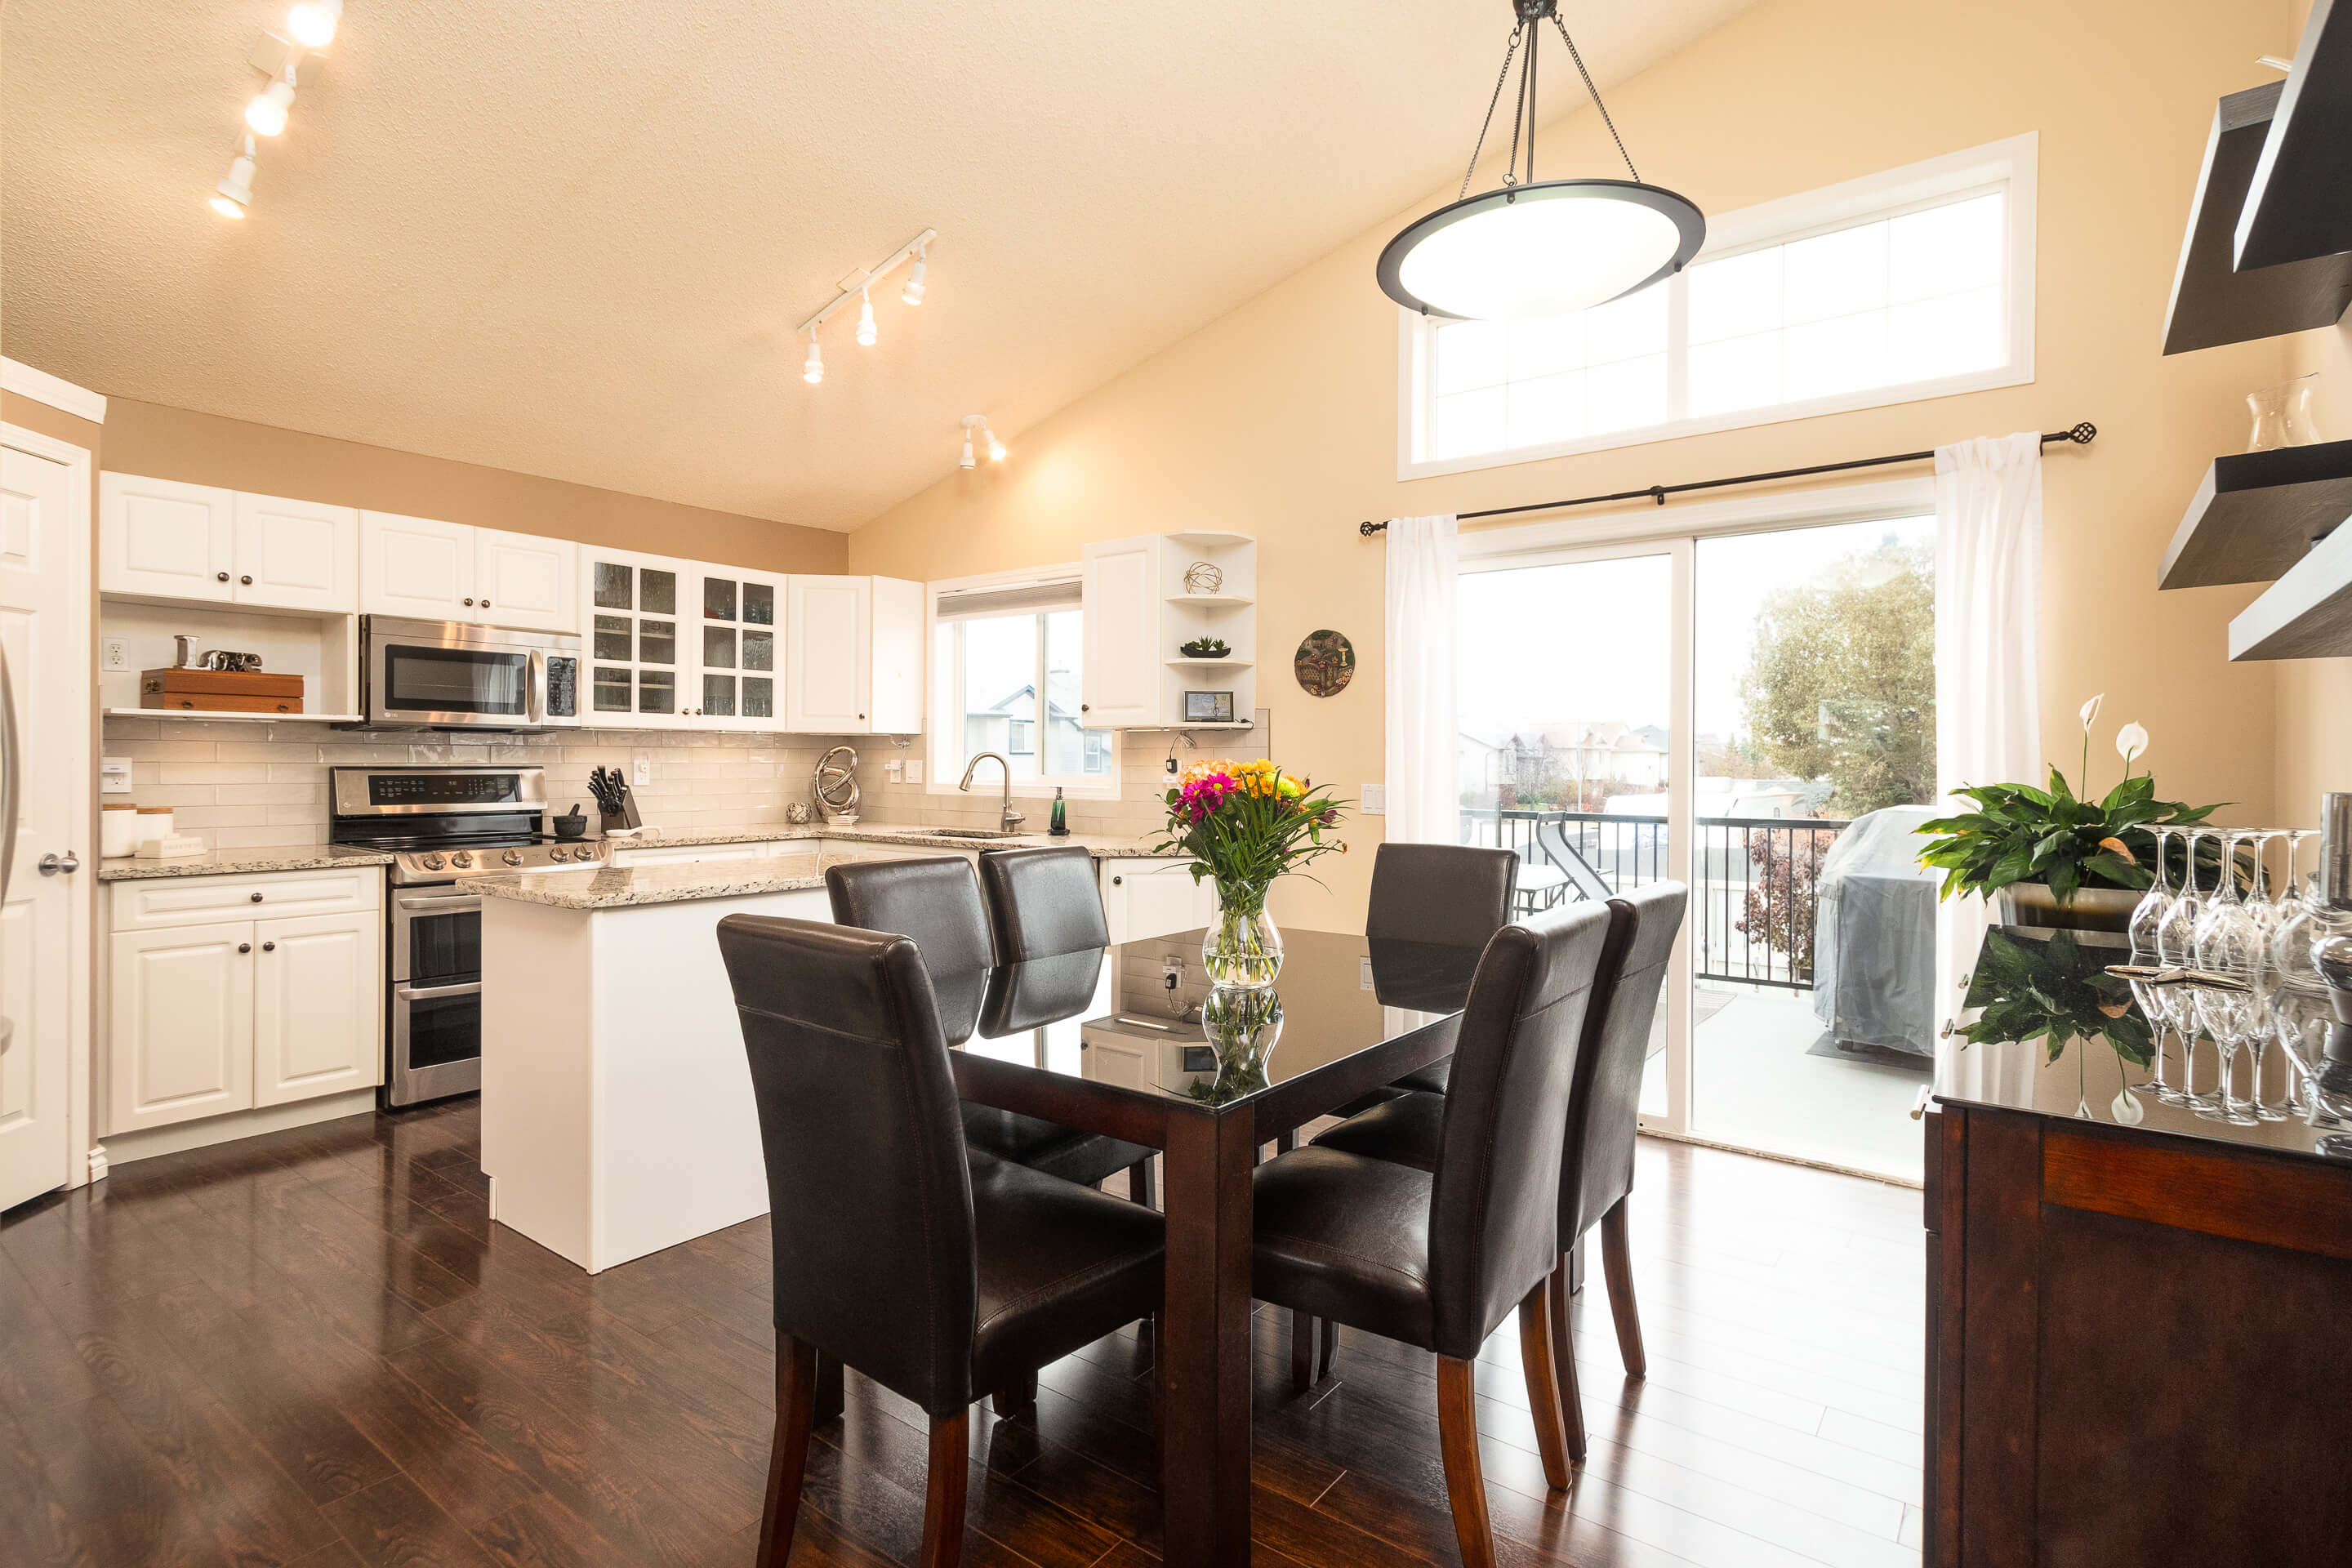 Hello Gorgeous - 225 Stonegate Crescent NW Airdrie - Tara Molina Real Estate (5 of 37)